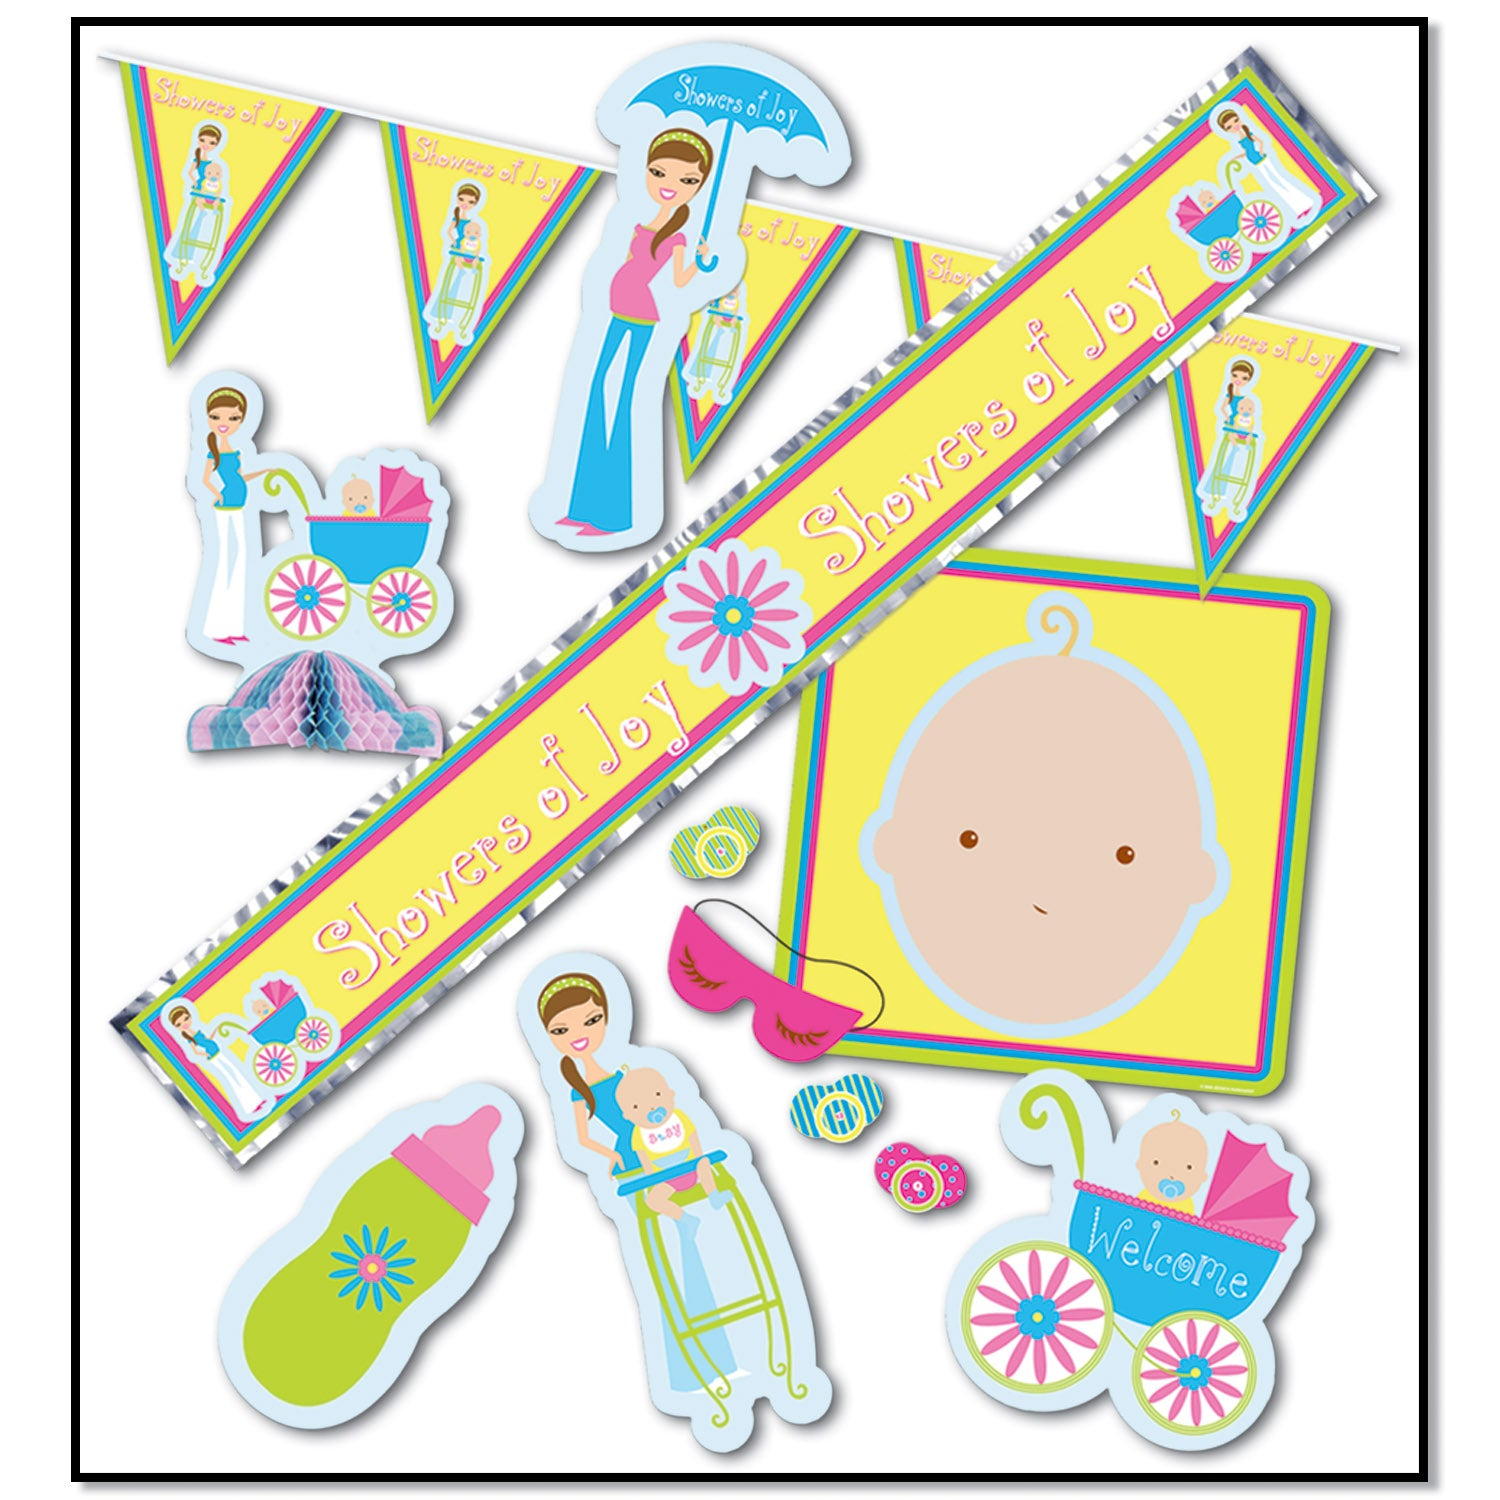 Showers Of Joy Party Kit by Beistle - Baby Shower Theme Decorations